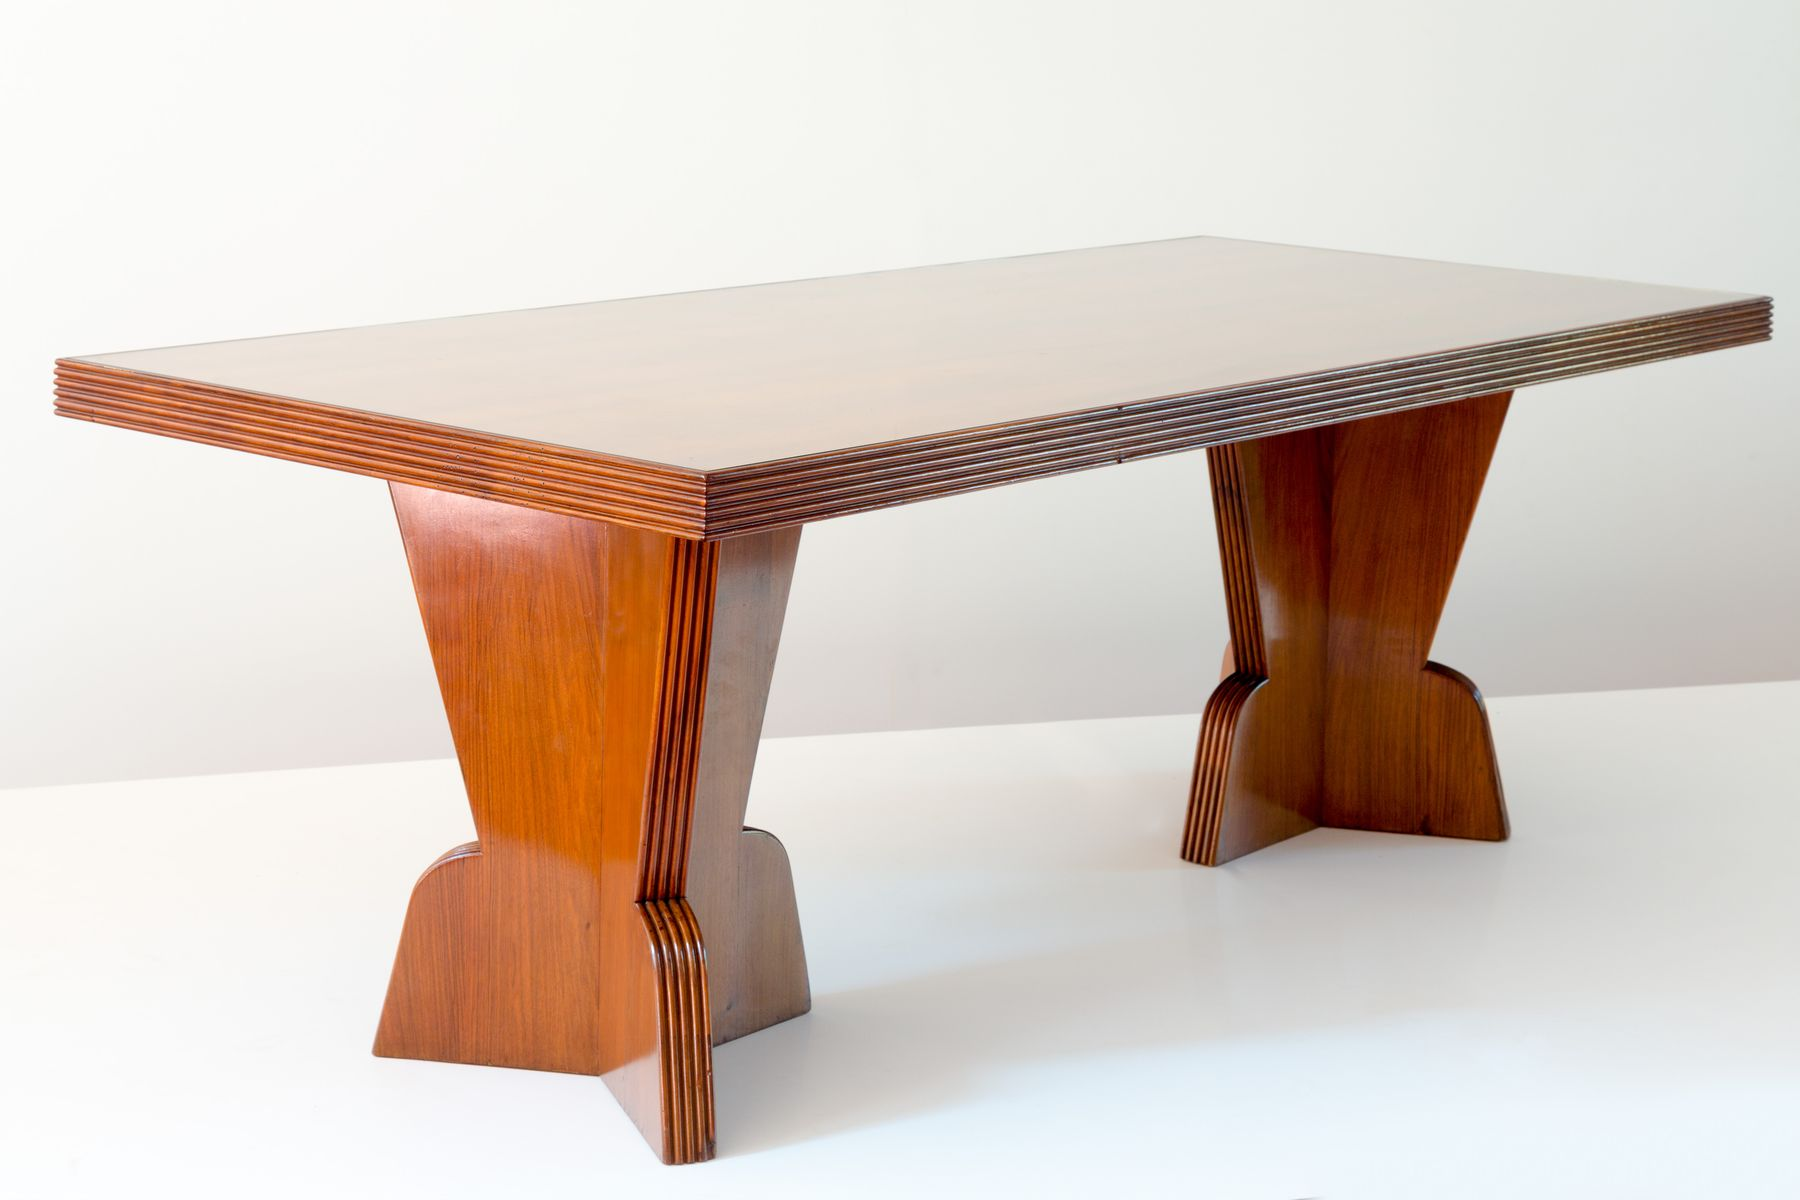 Executive Conference Table By Gio Ponti, 1939 For Sale At Pamono